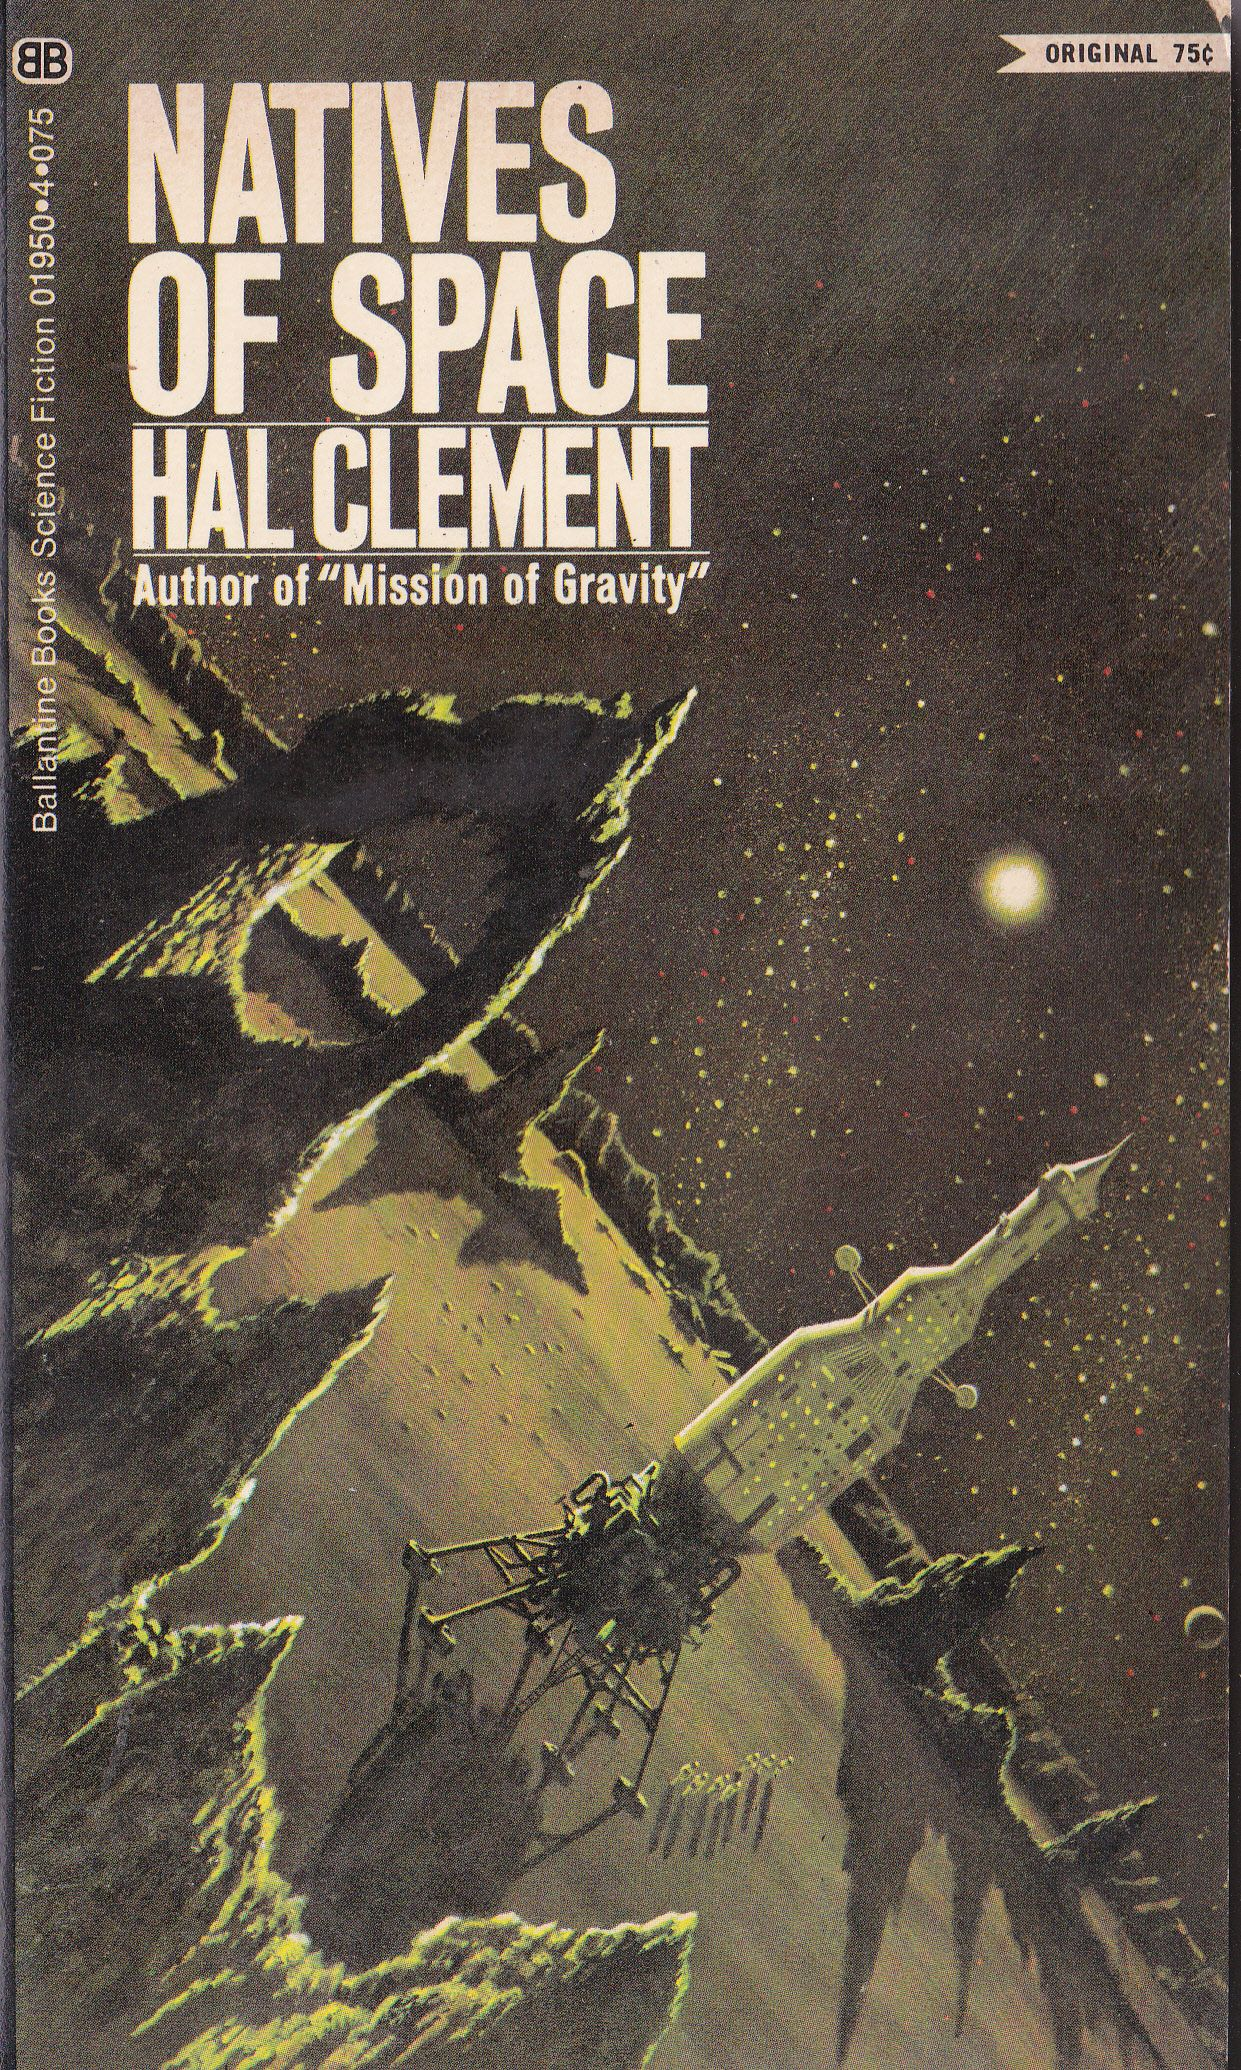 Clasicos Ciencia Ficcion Libros Hal Clement Natives Of Space Sci Fi Books Covers